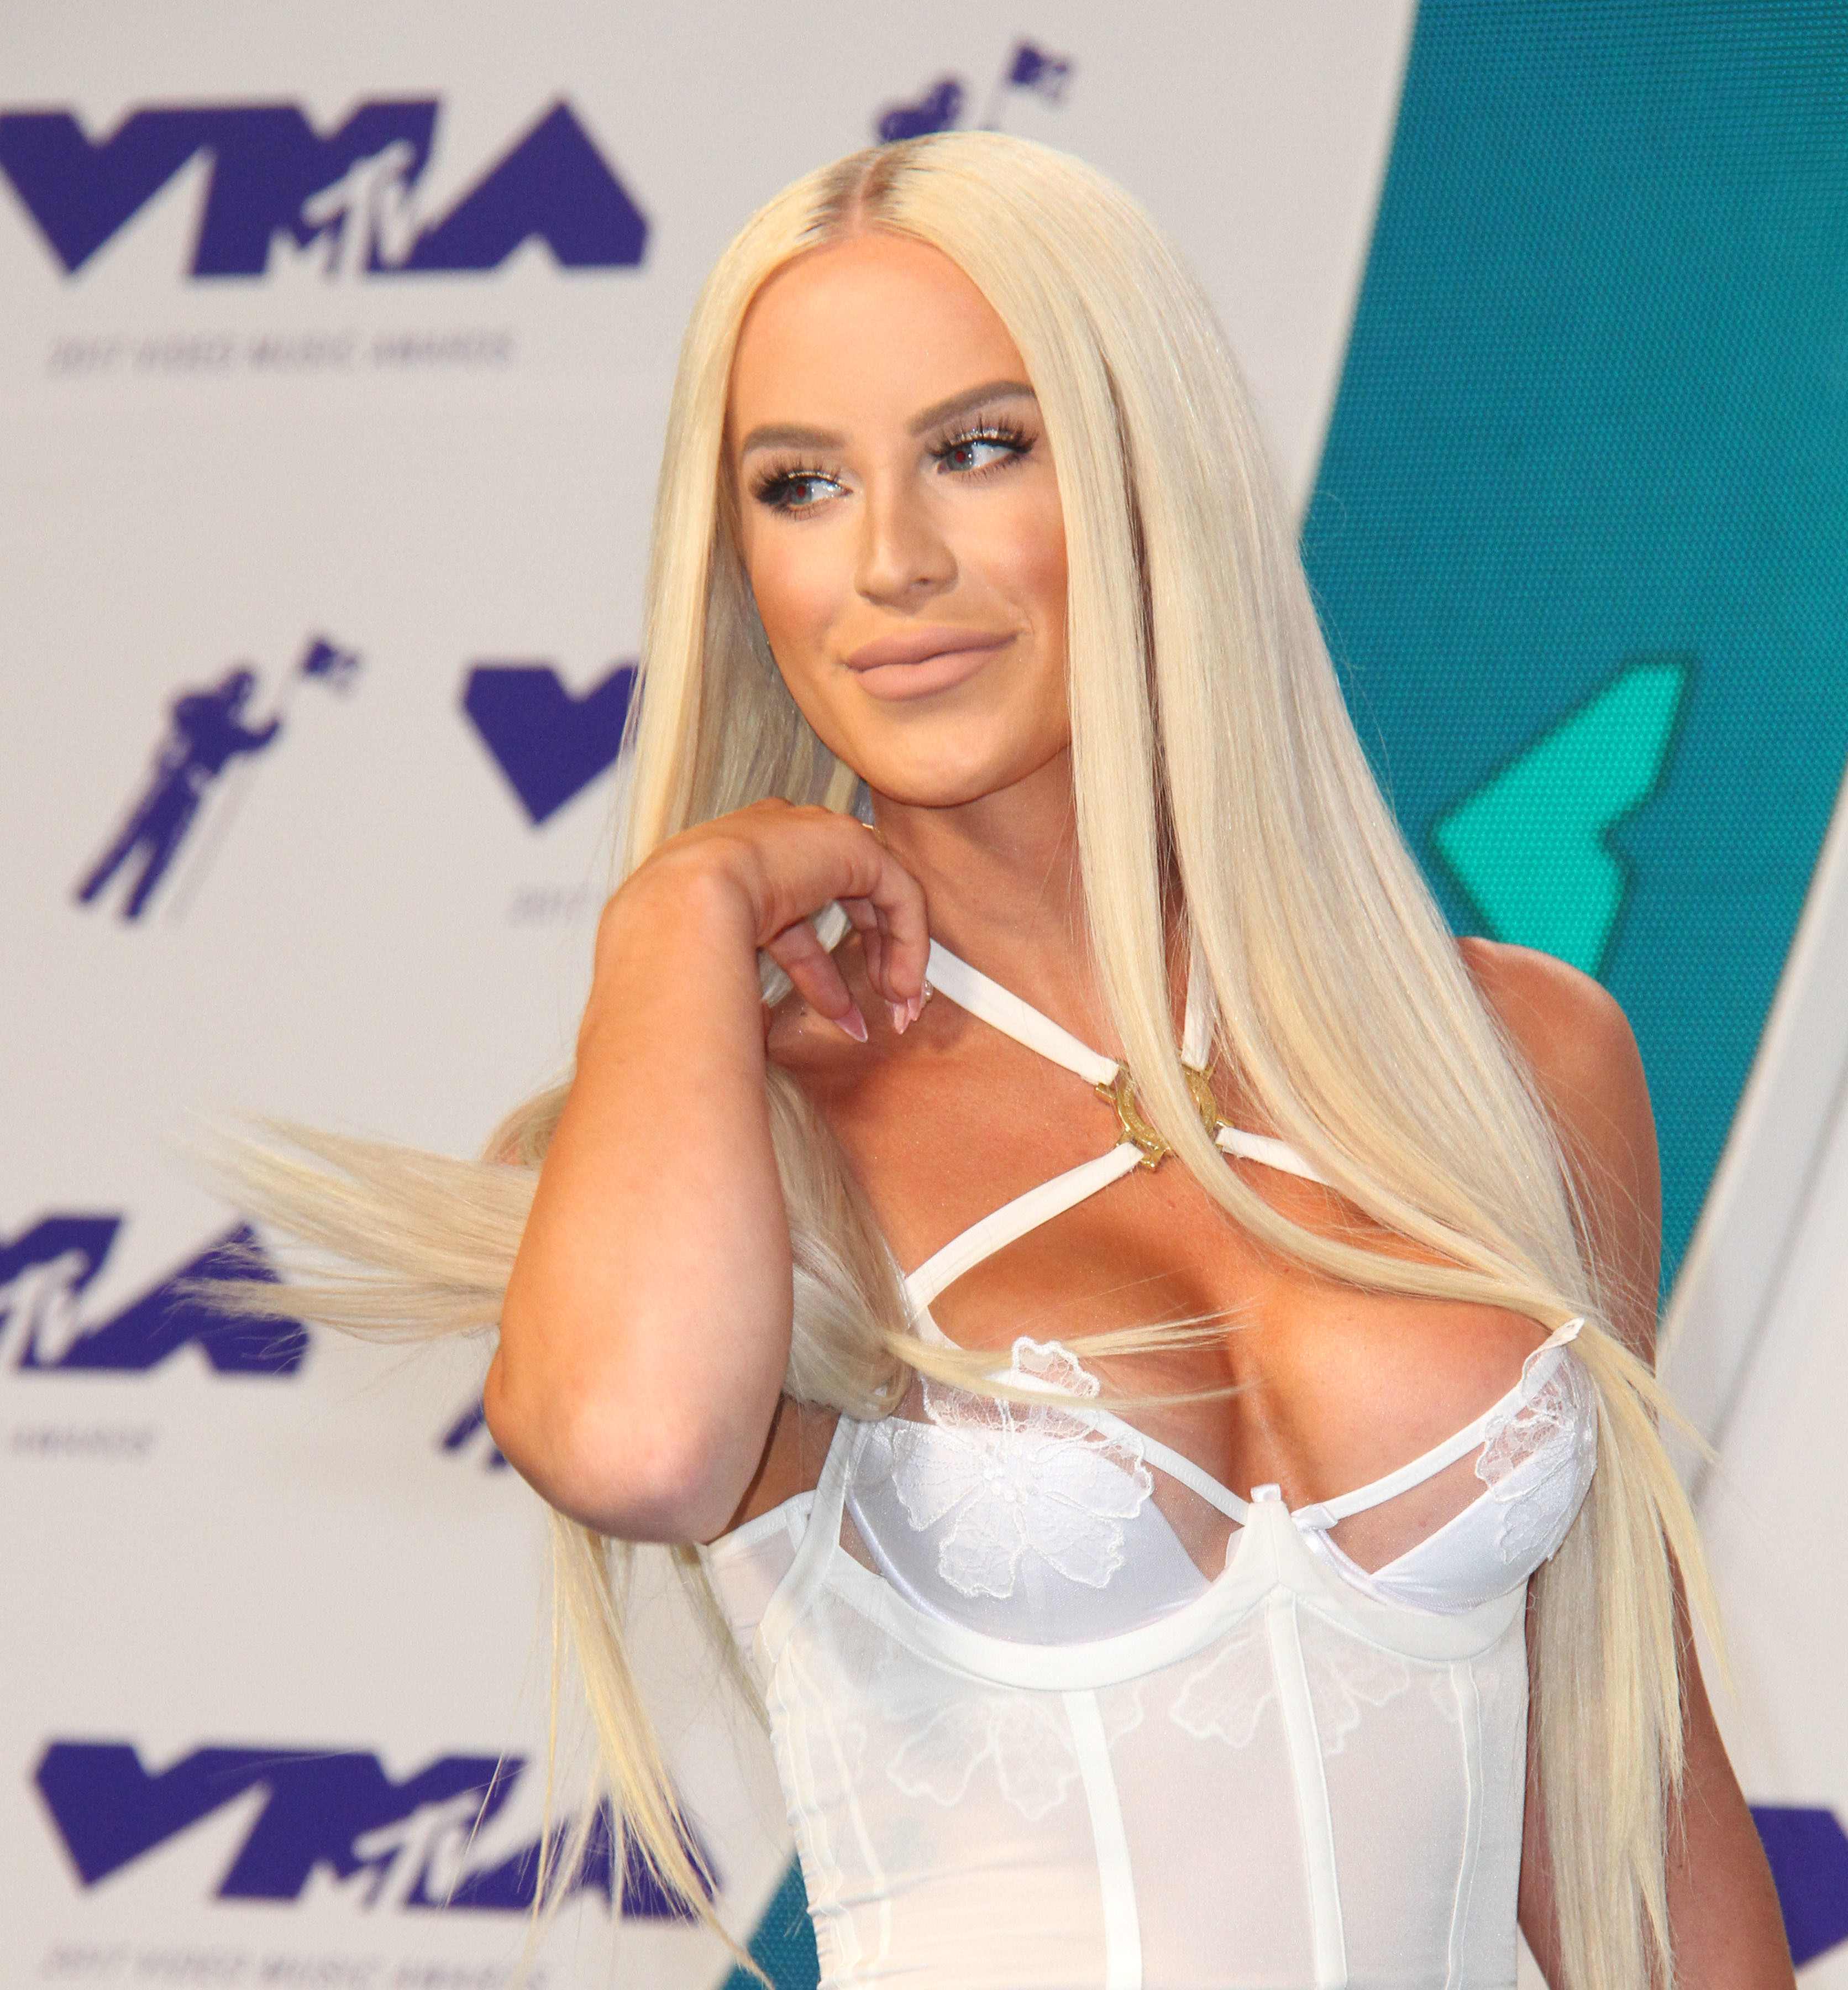 MTV Video Music Awards (VMA) 2017 Arrivals held at the Forum in Inglewood, California.  Featuring: Gigi Gorgeous Where: Los Angeles, California, United States When: 26 Aug 2017 Credit: Adriana M. Barraza/WENN.com